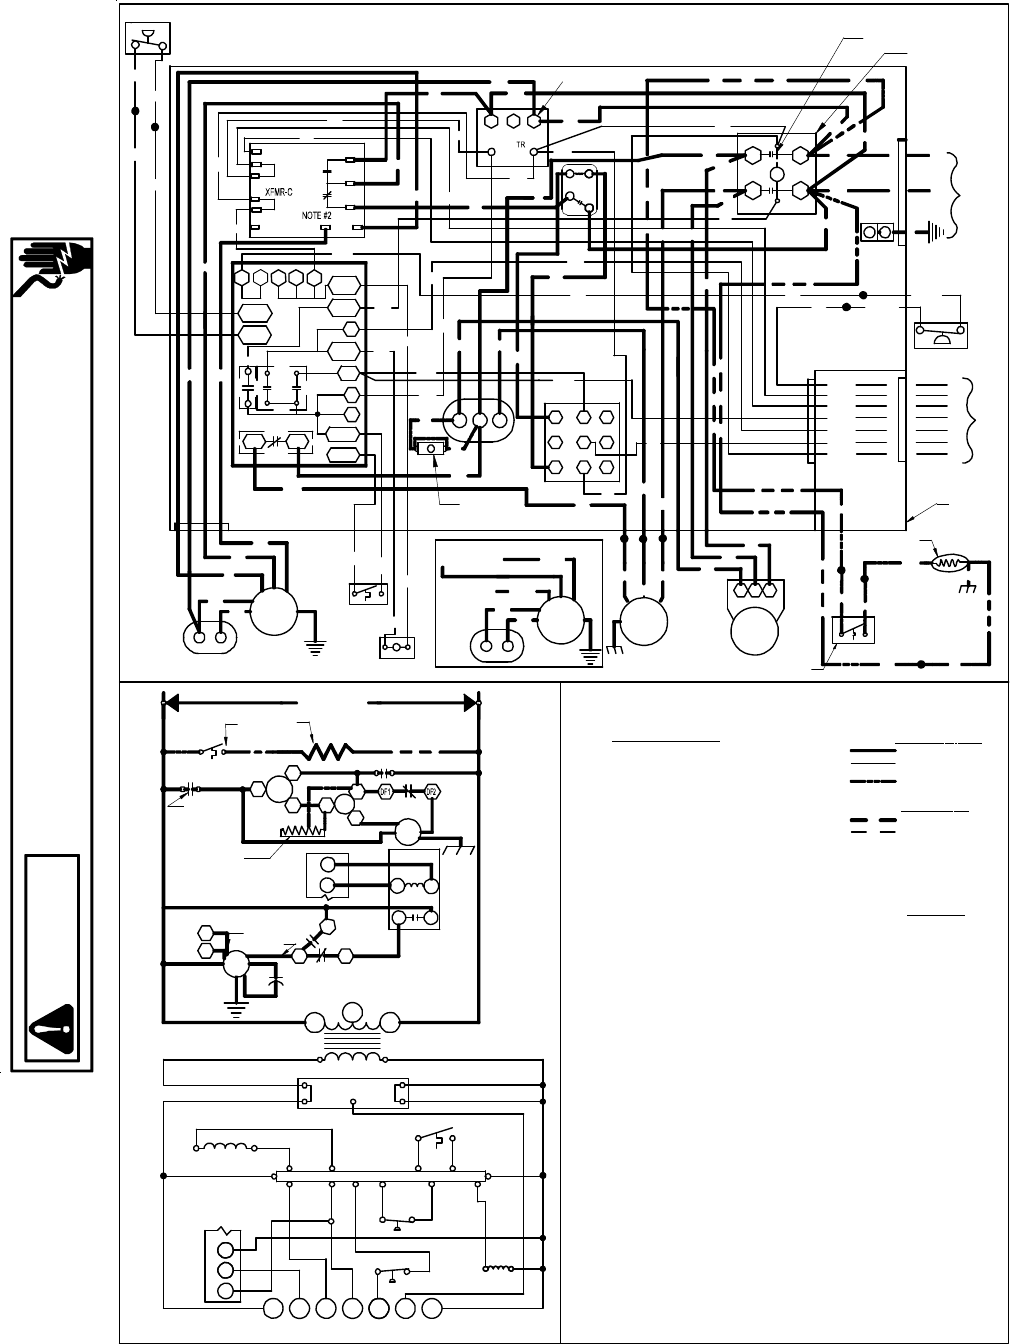 Trane Wiring Schematic, Trane, Free Engine Image For User